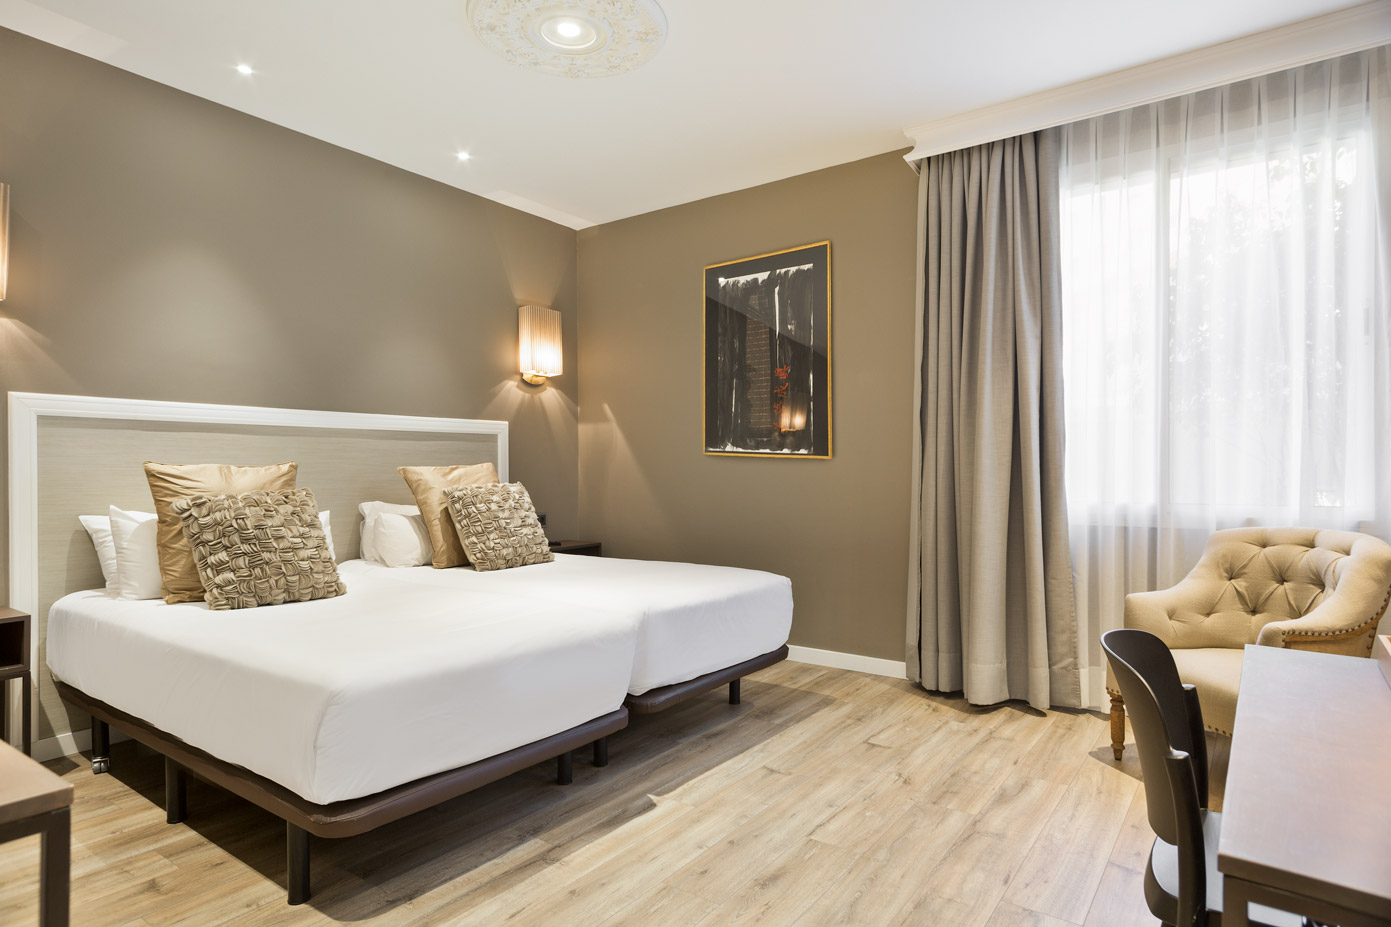 HOTEL_ACTA_SPLENDID_DOBLE_TWIN_SUPERIOR_05